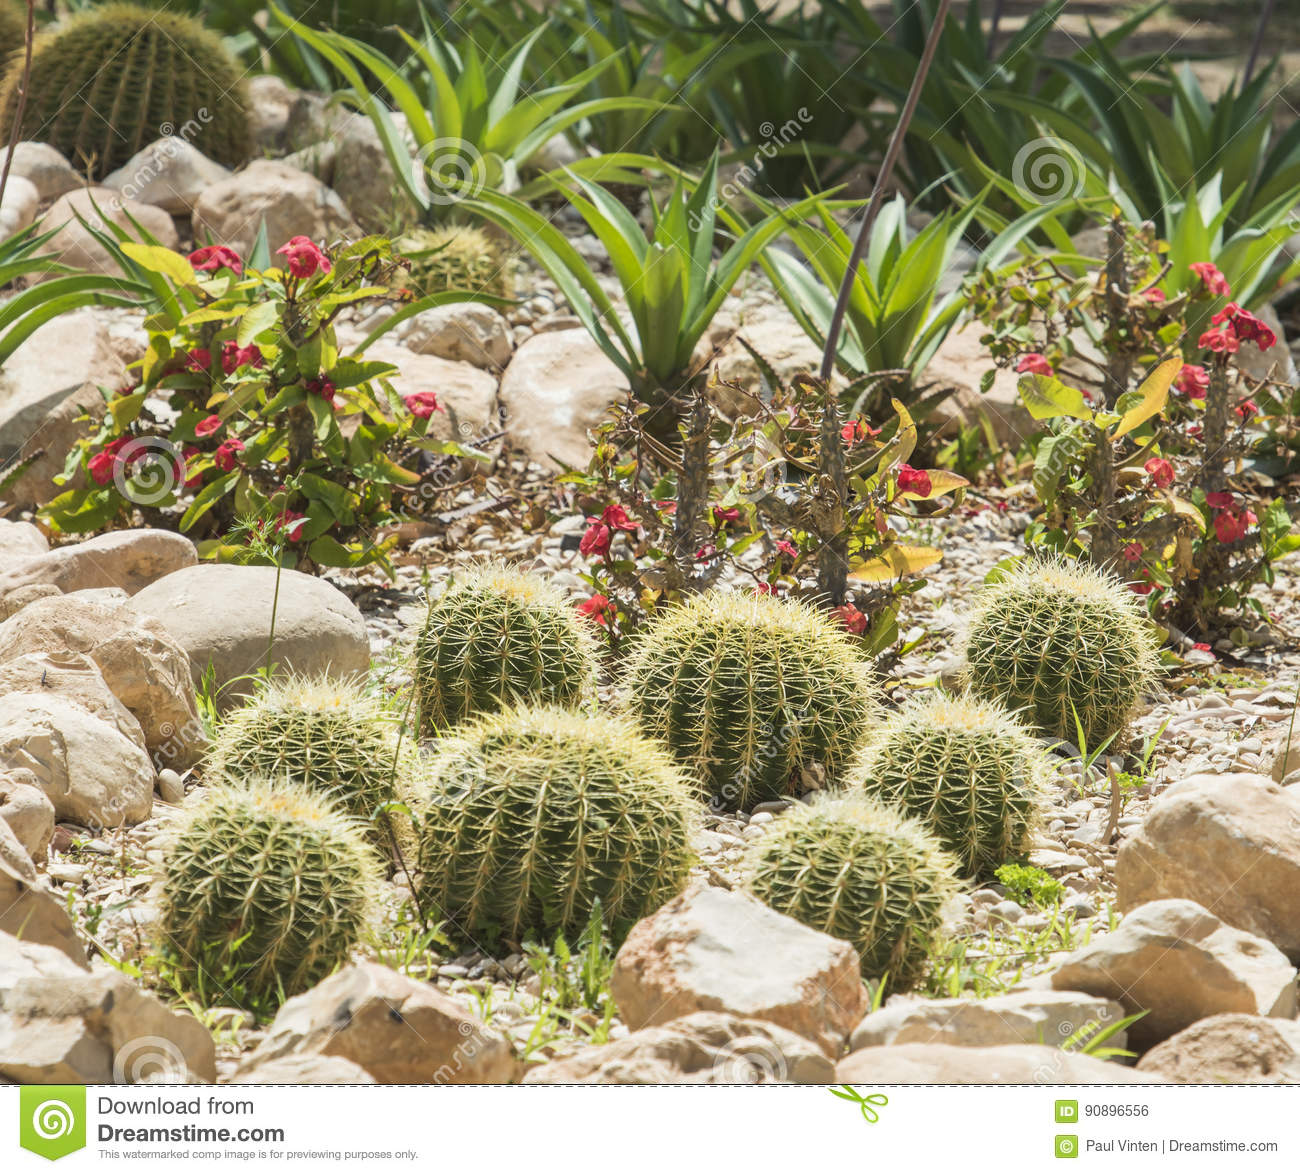 Barrel Cactus Plants In An Arid Desert Garden Stock Photo Image Of